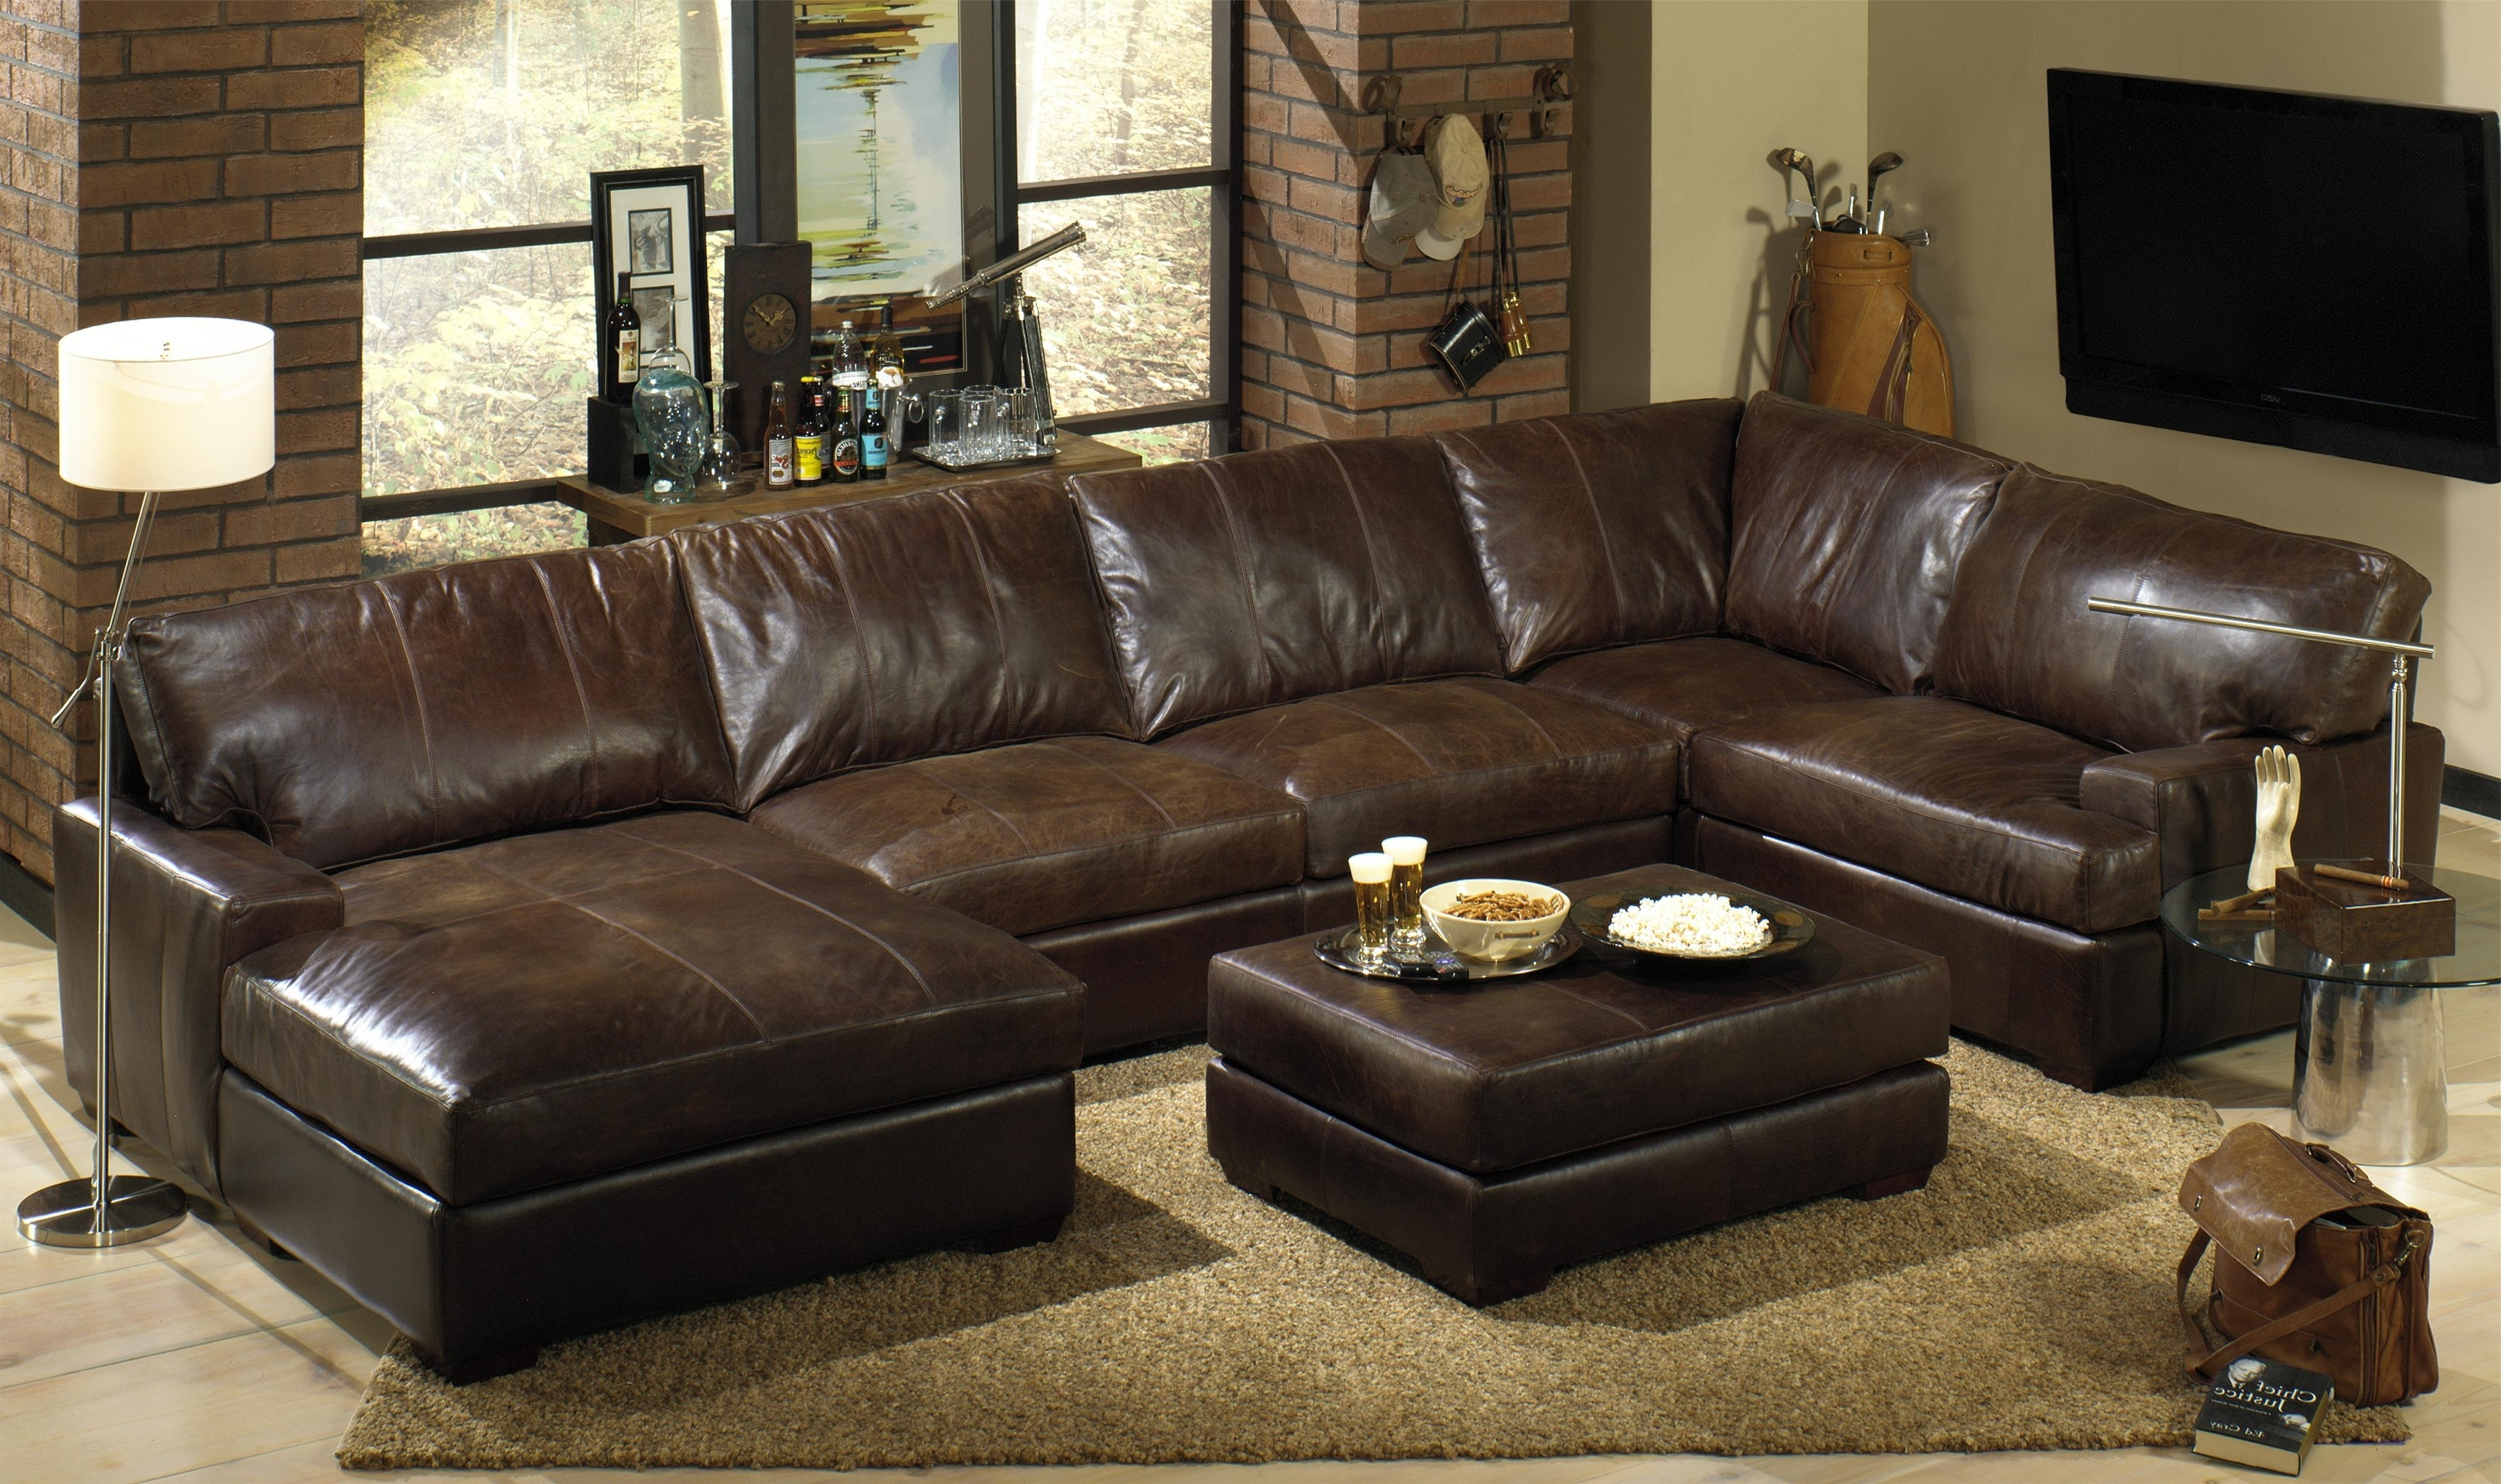 sears clearwater sofa sectional score live football 15 best ideas of craftsman sofas well known big lots living room furniture sale with regard to